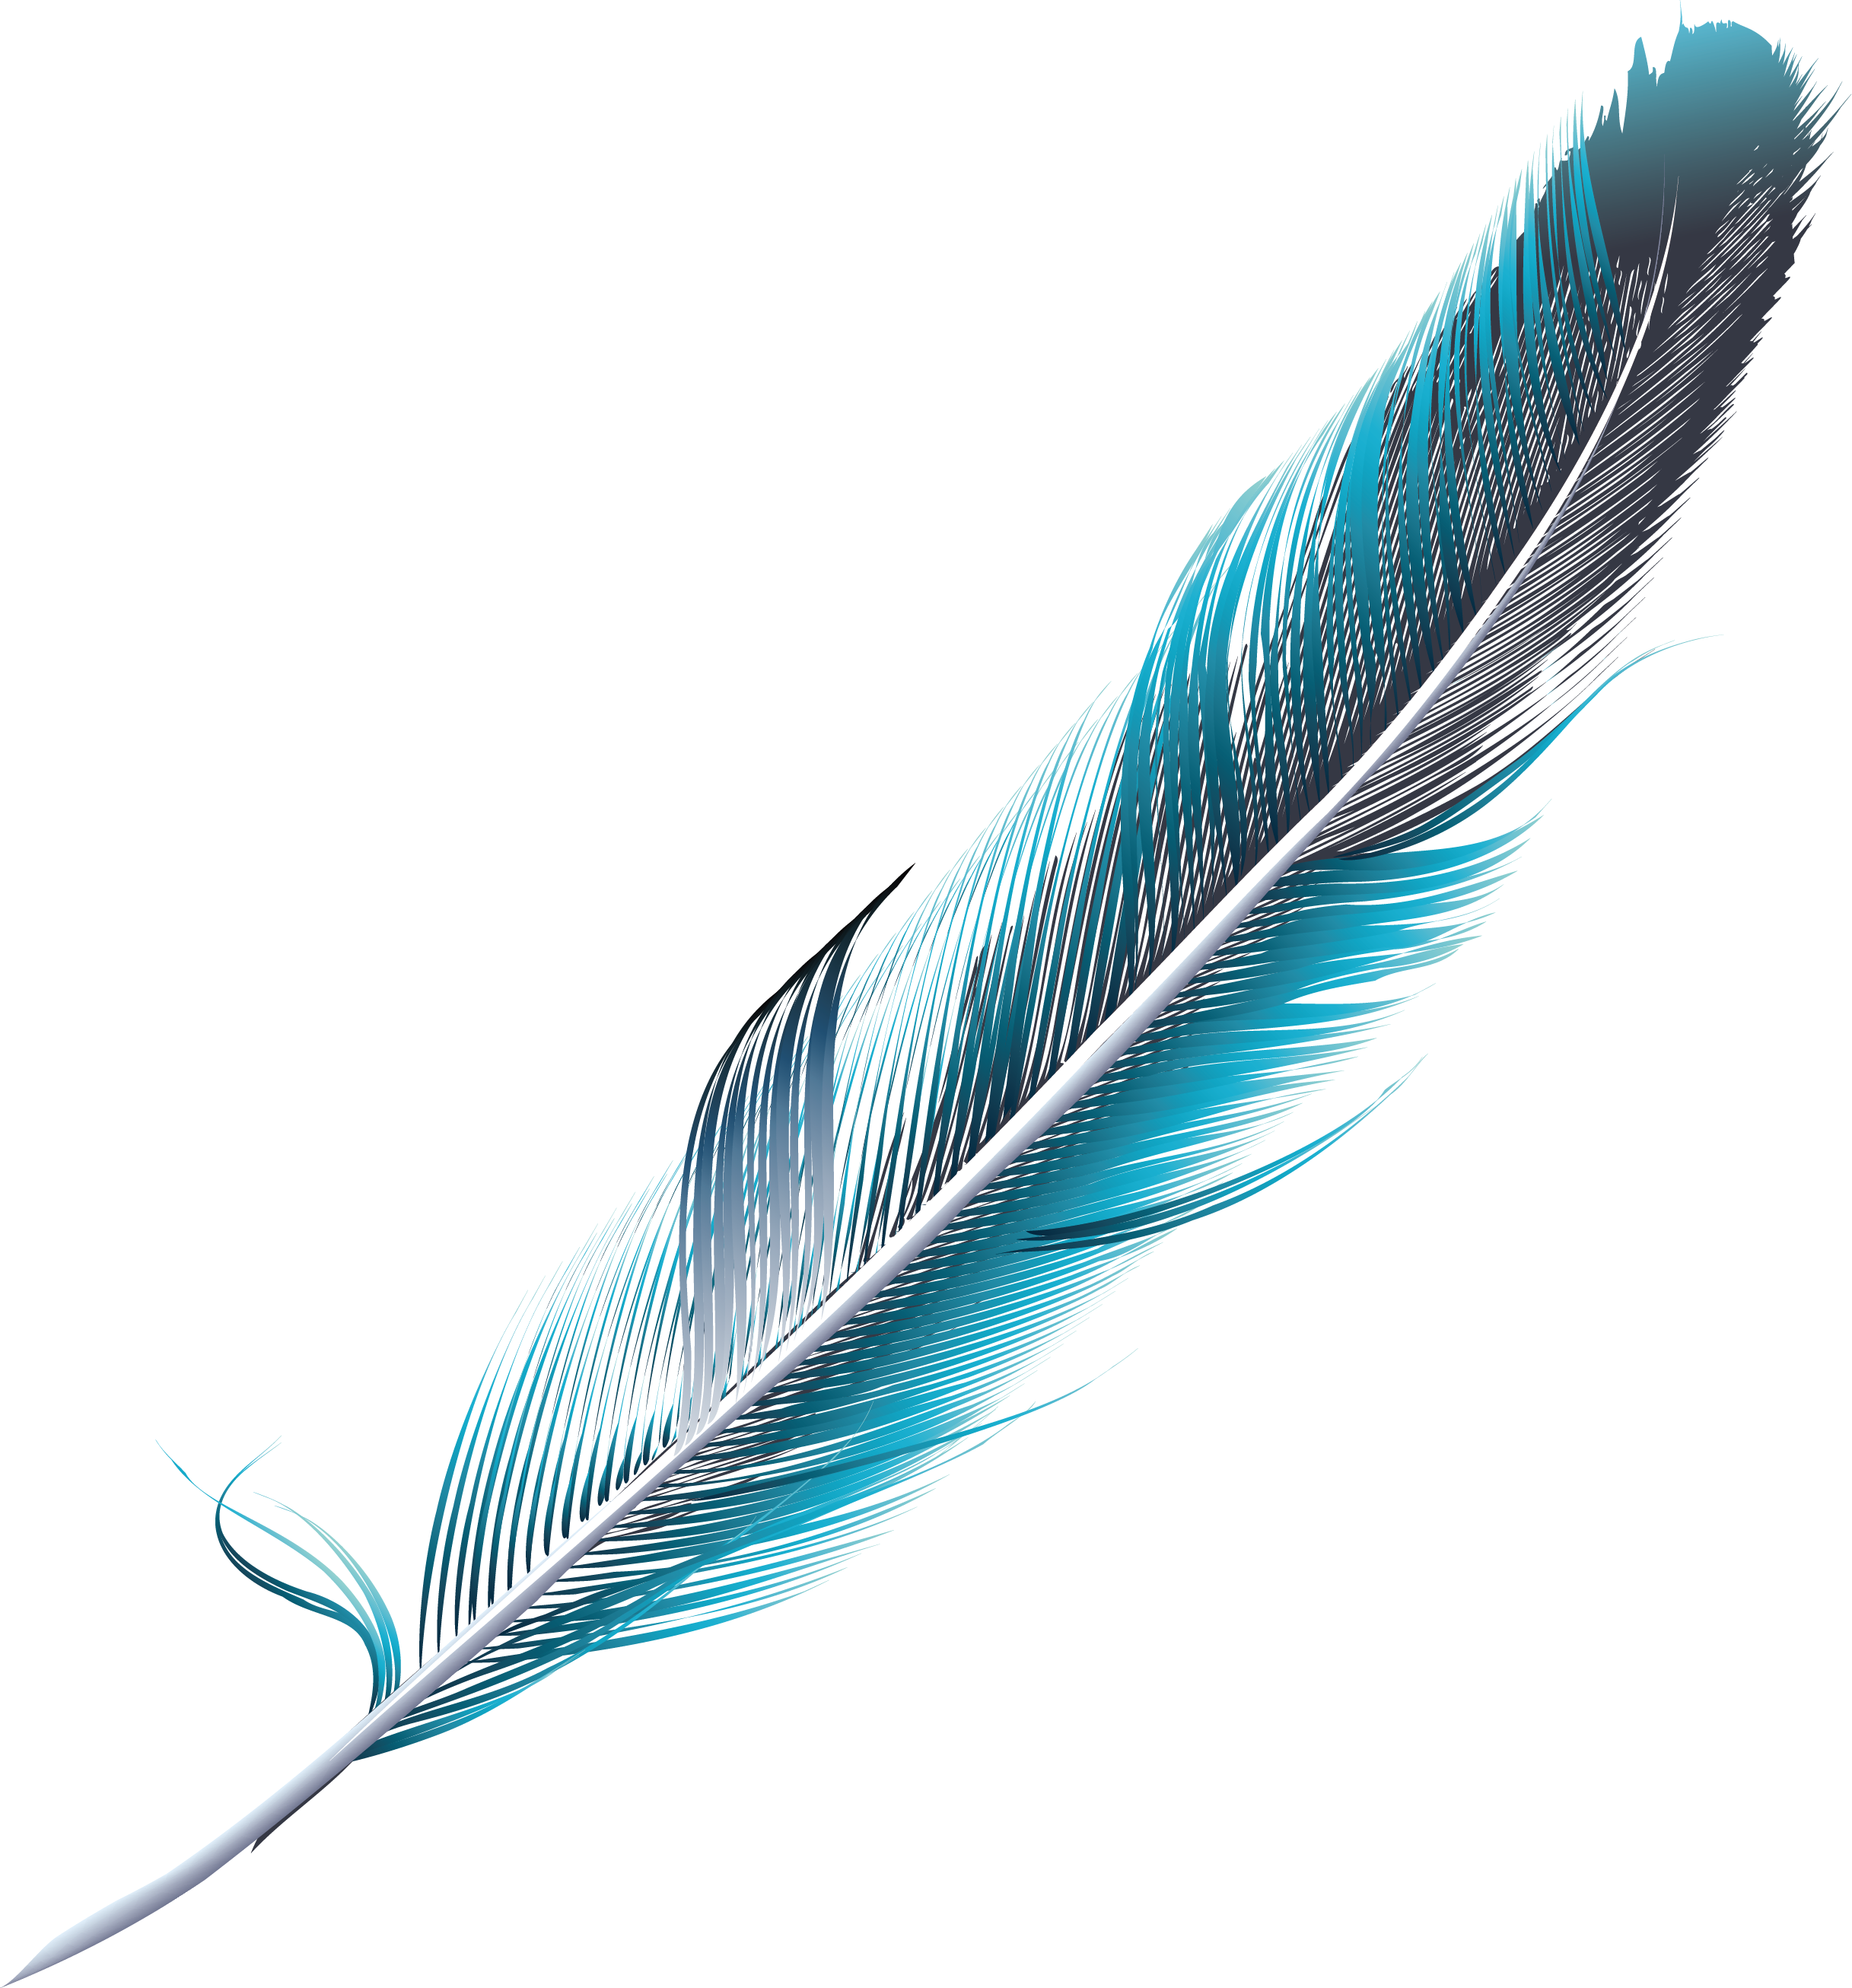 Blue feathers png. Feather green slender bluegreen